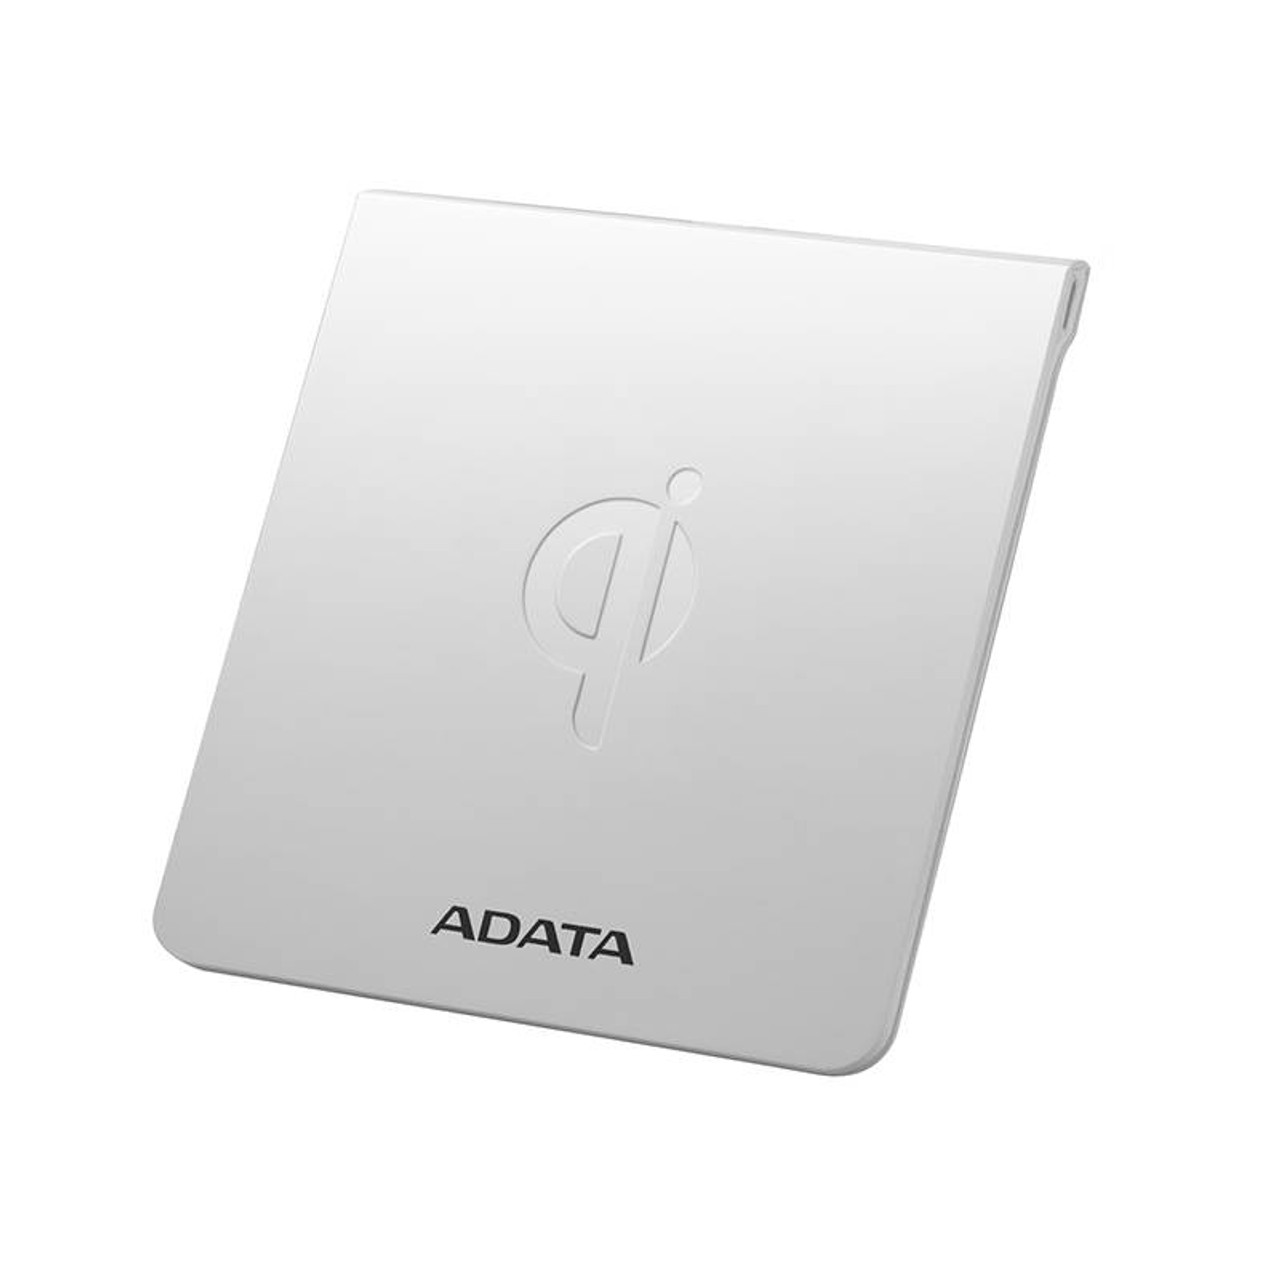 Image for Adata CW0050 Wireless Charging Pad - White CX Computer Superstore